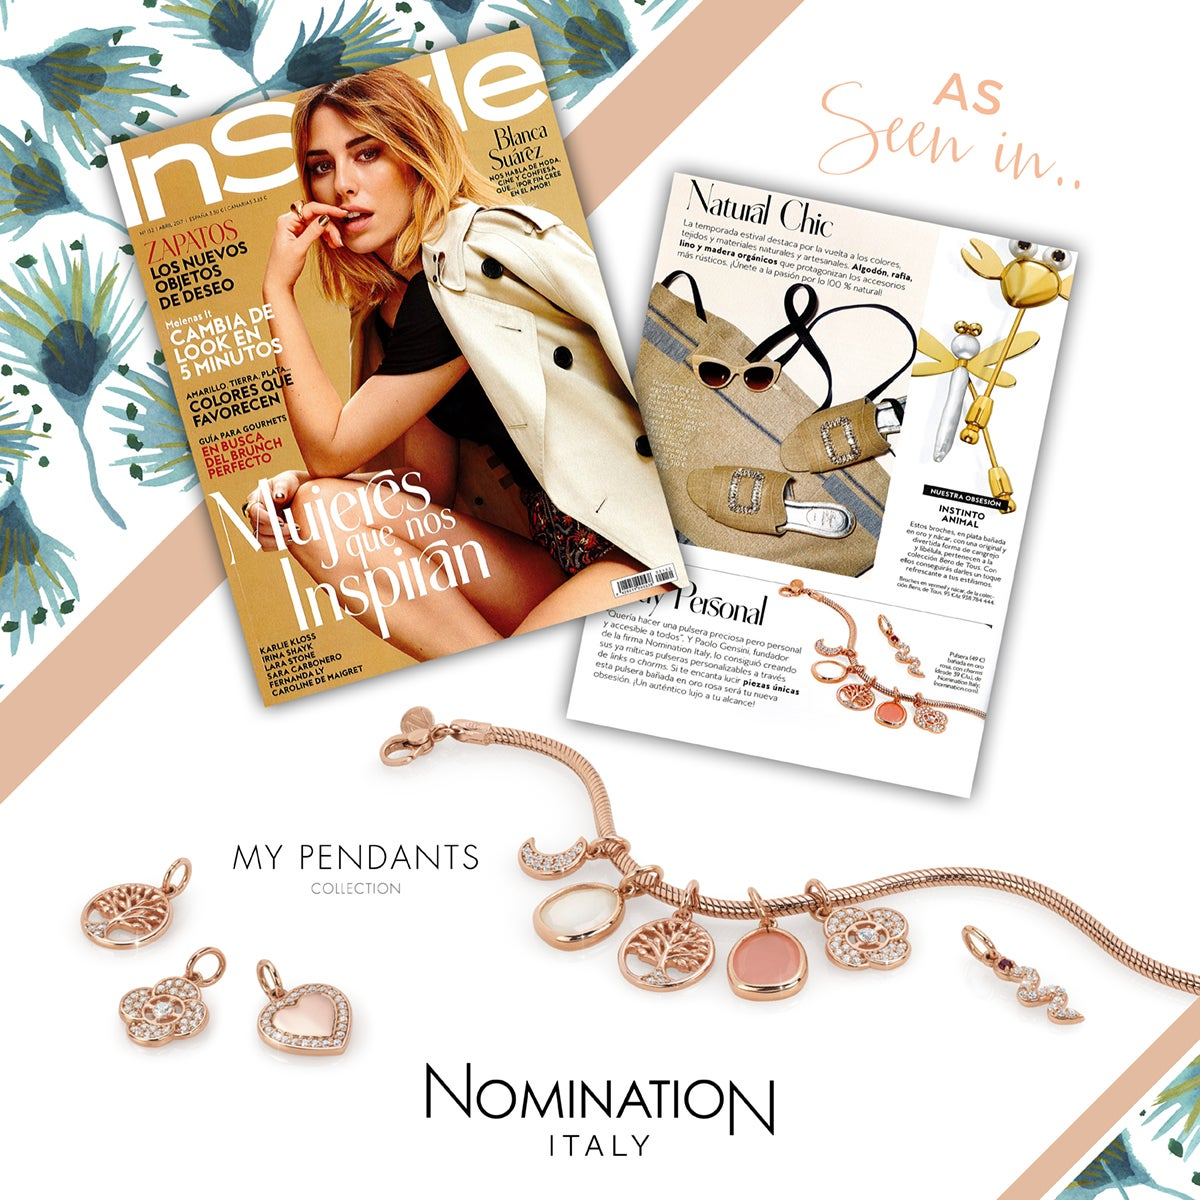 InStyle_Spain_-_MyPendants_Collection_blog_Nomination